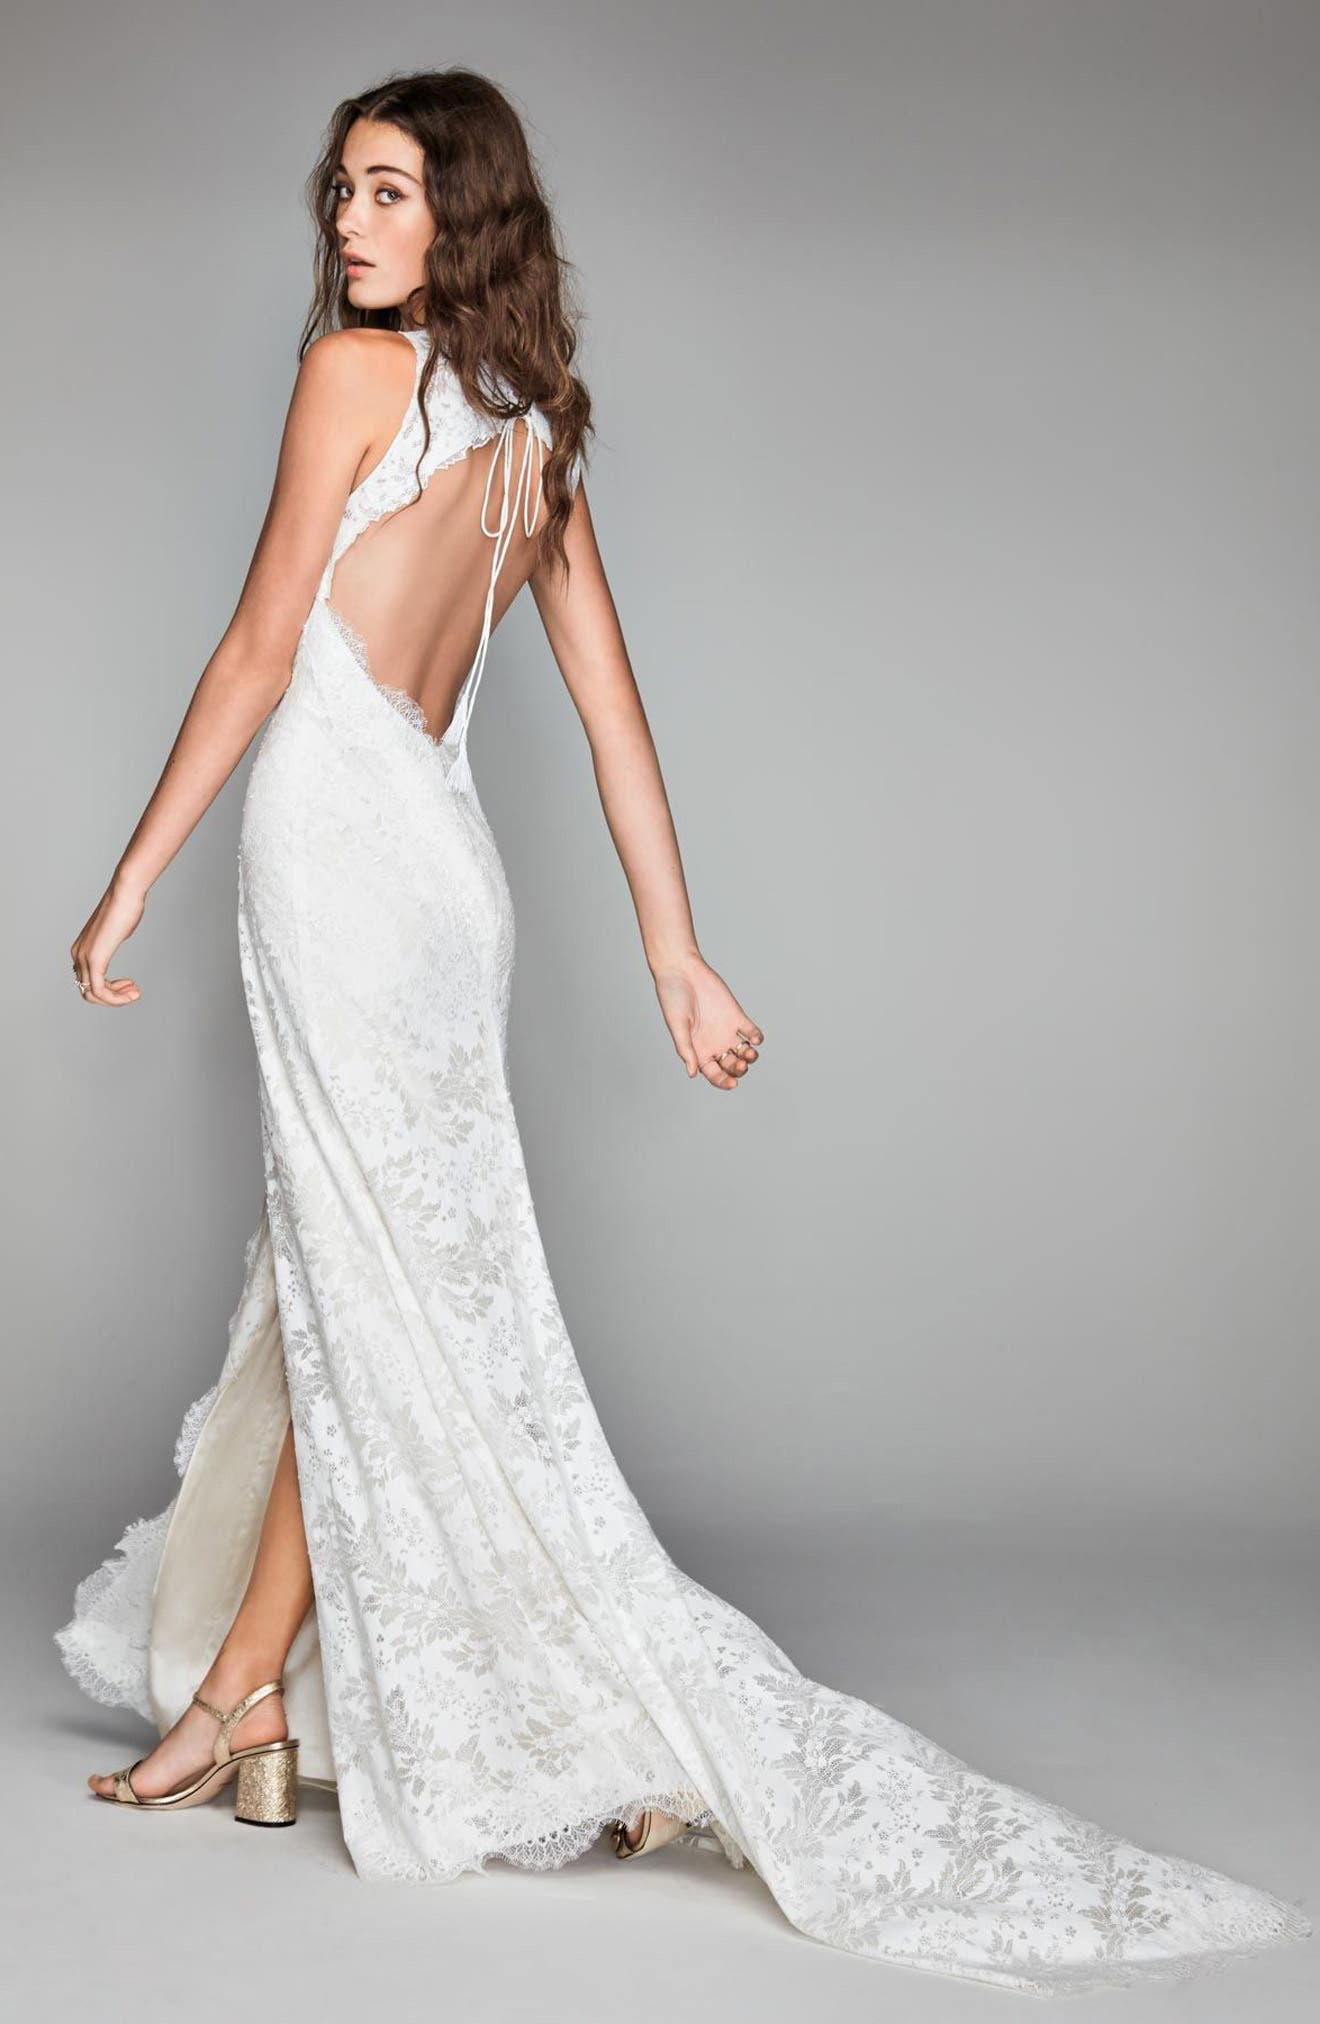 Libra Lace Sheath Gown,                             Alternate thumbnail 2, color,                             Ivory/ Oyster